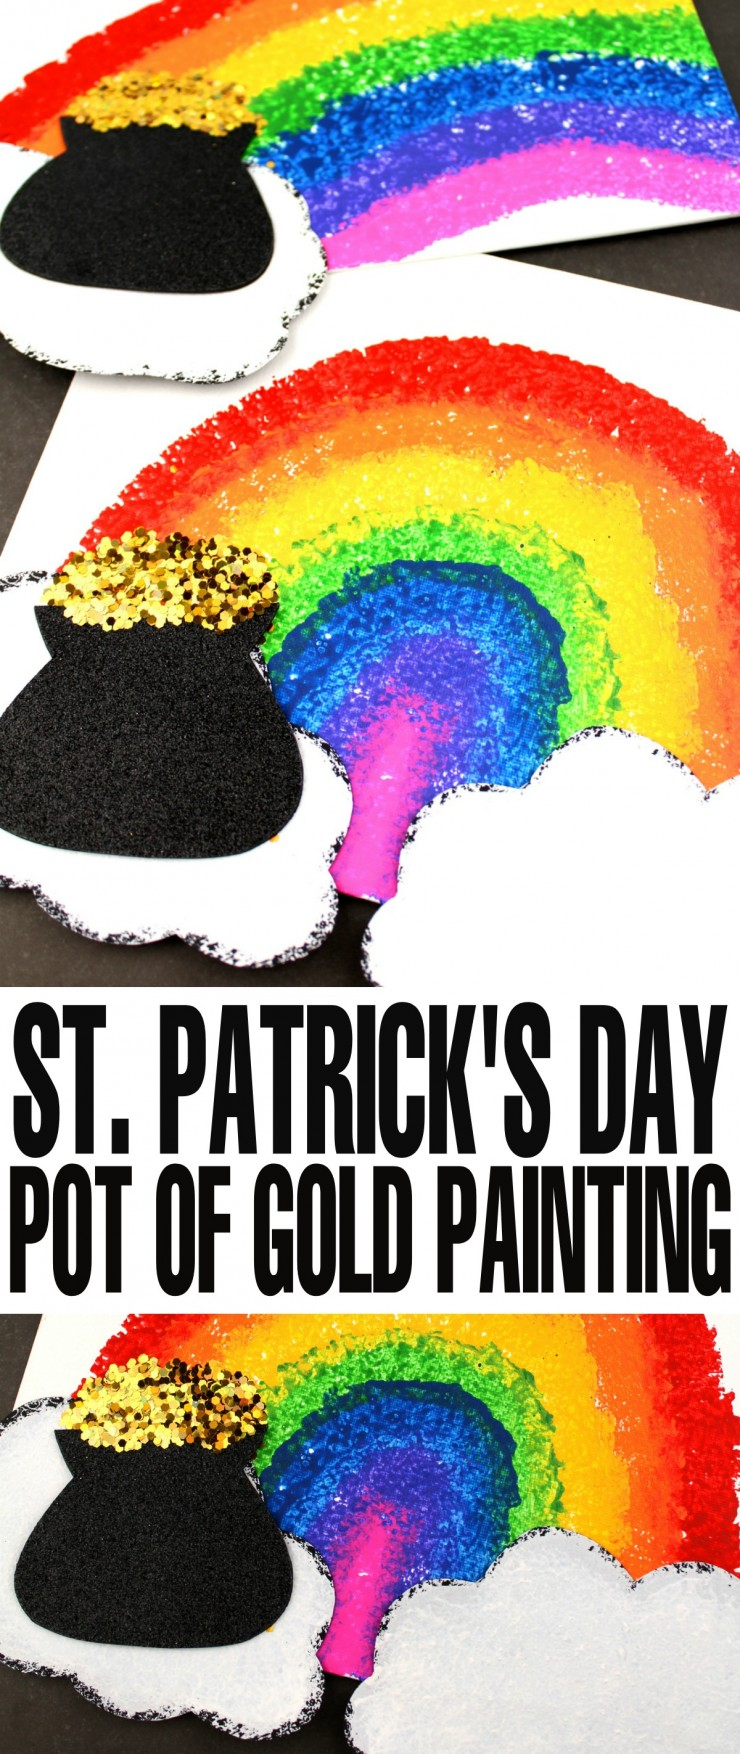 This St. Patrick's Day Pot Of Gold Sponge Painting is fun craft for kids that also makes for a lovely keepsake gift or art to hang up on your childs wall.